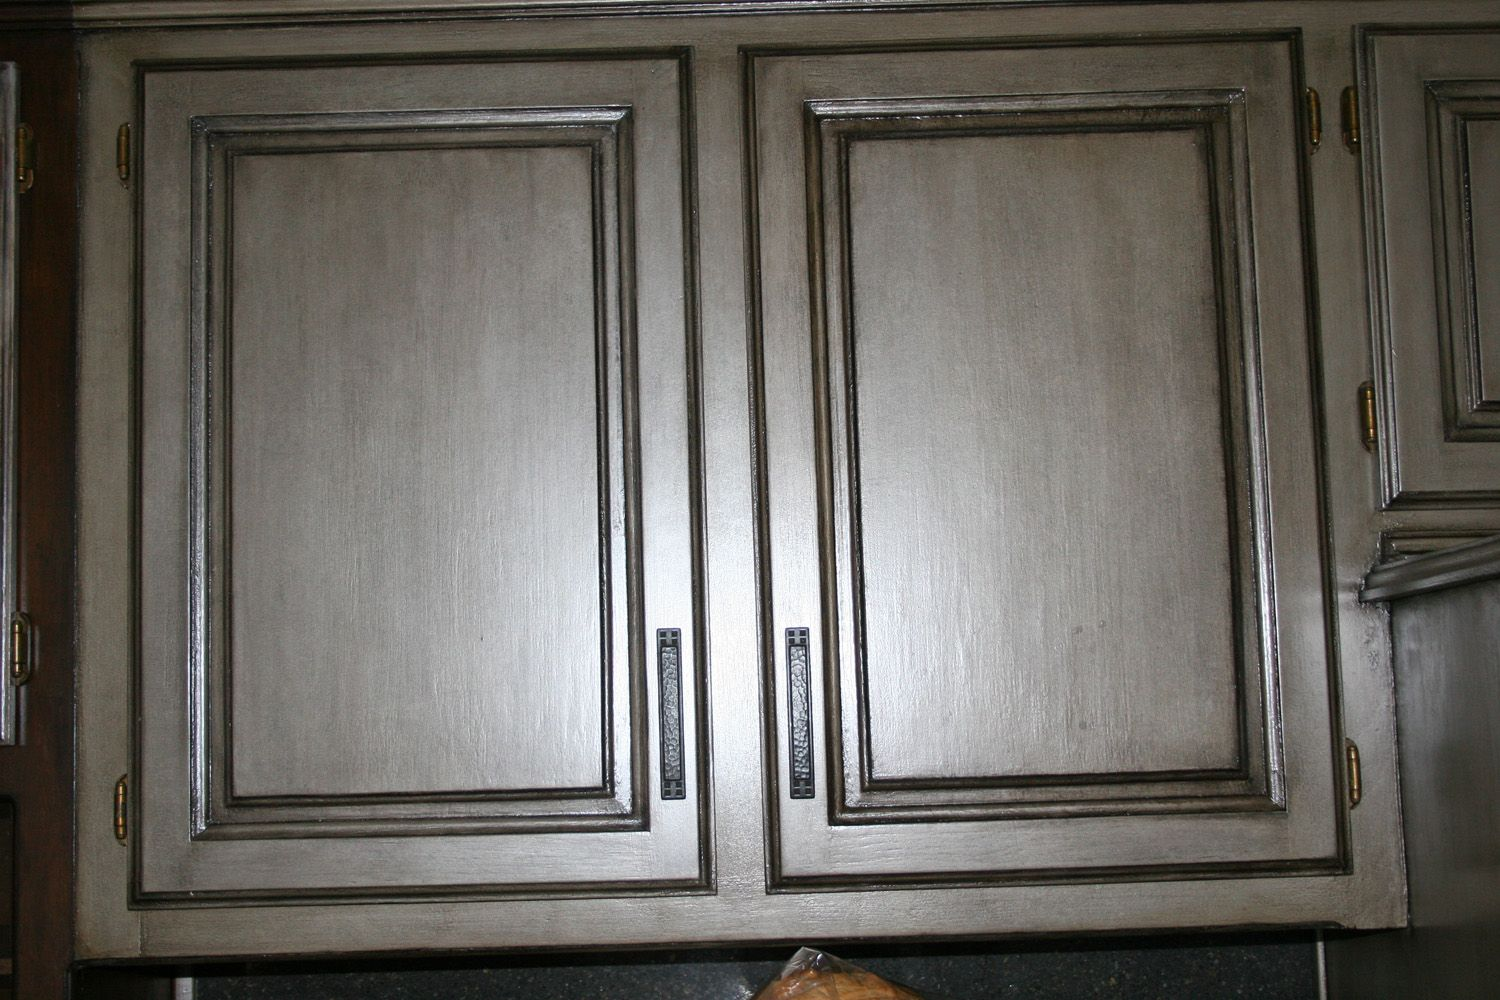 GRAY GLAZED Painted Kitchen Cabinets This Finish Is Overglazed - Grey glazed cabinets